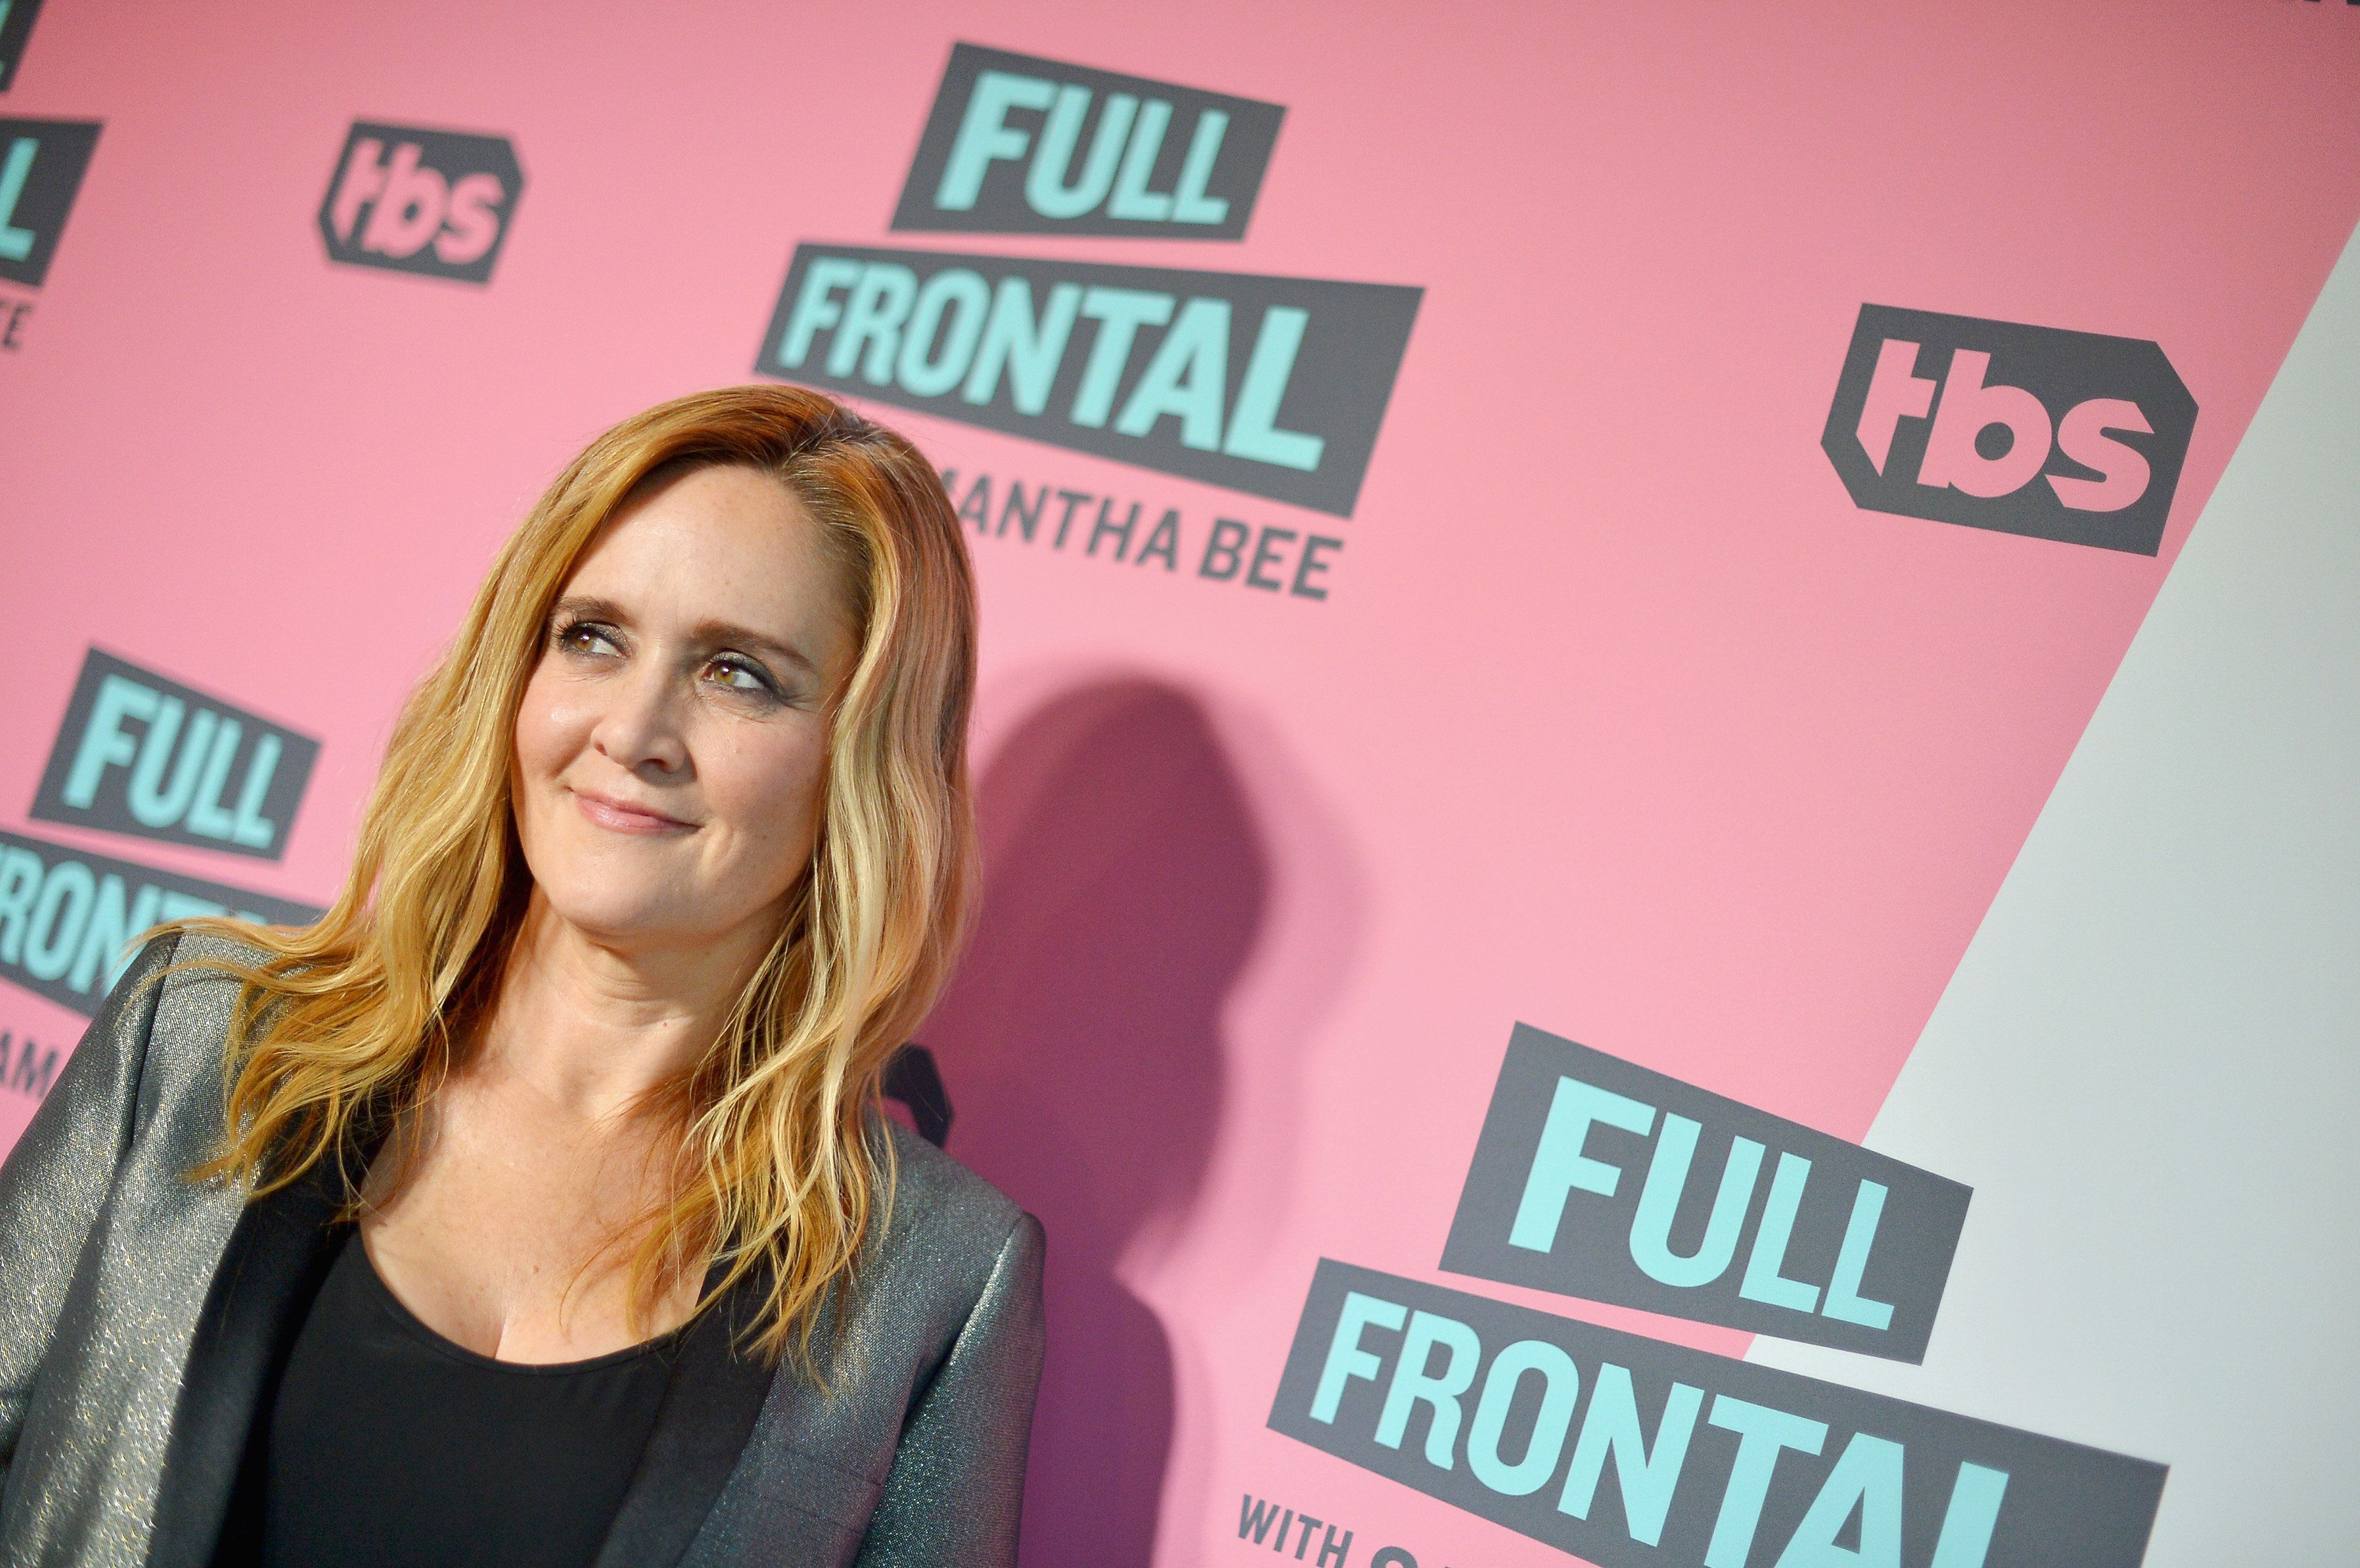 BEVERLY HILLS, CA - MAY 24:  Executive Producer & Host Samantha Bee attends 'Full Frontal with Samantha Bee' FYC Event Los Angeles at The WGA Theater on May 24, 2018 in Beverly Hills, California.  (Photo by Charley Gallay/Getty Images for TBS/Turner)